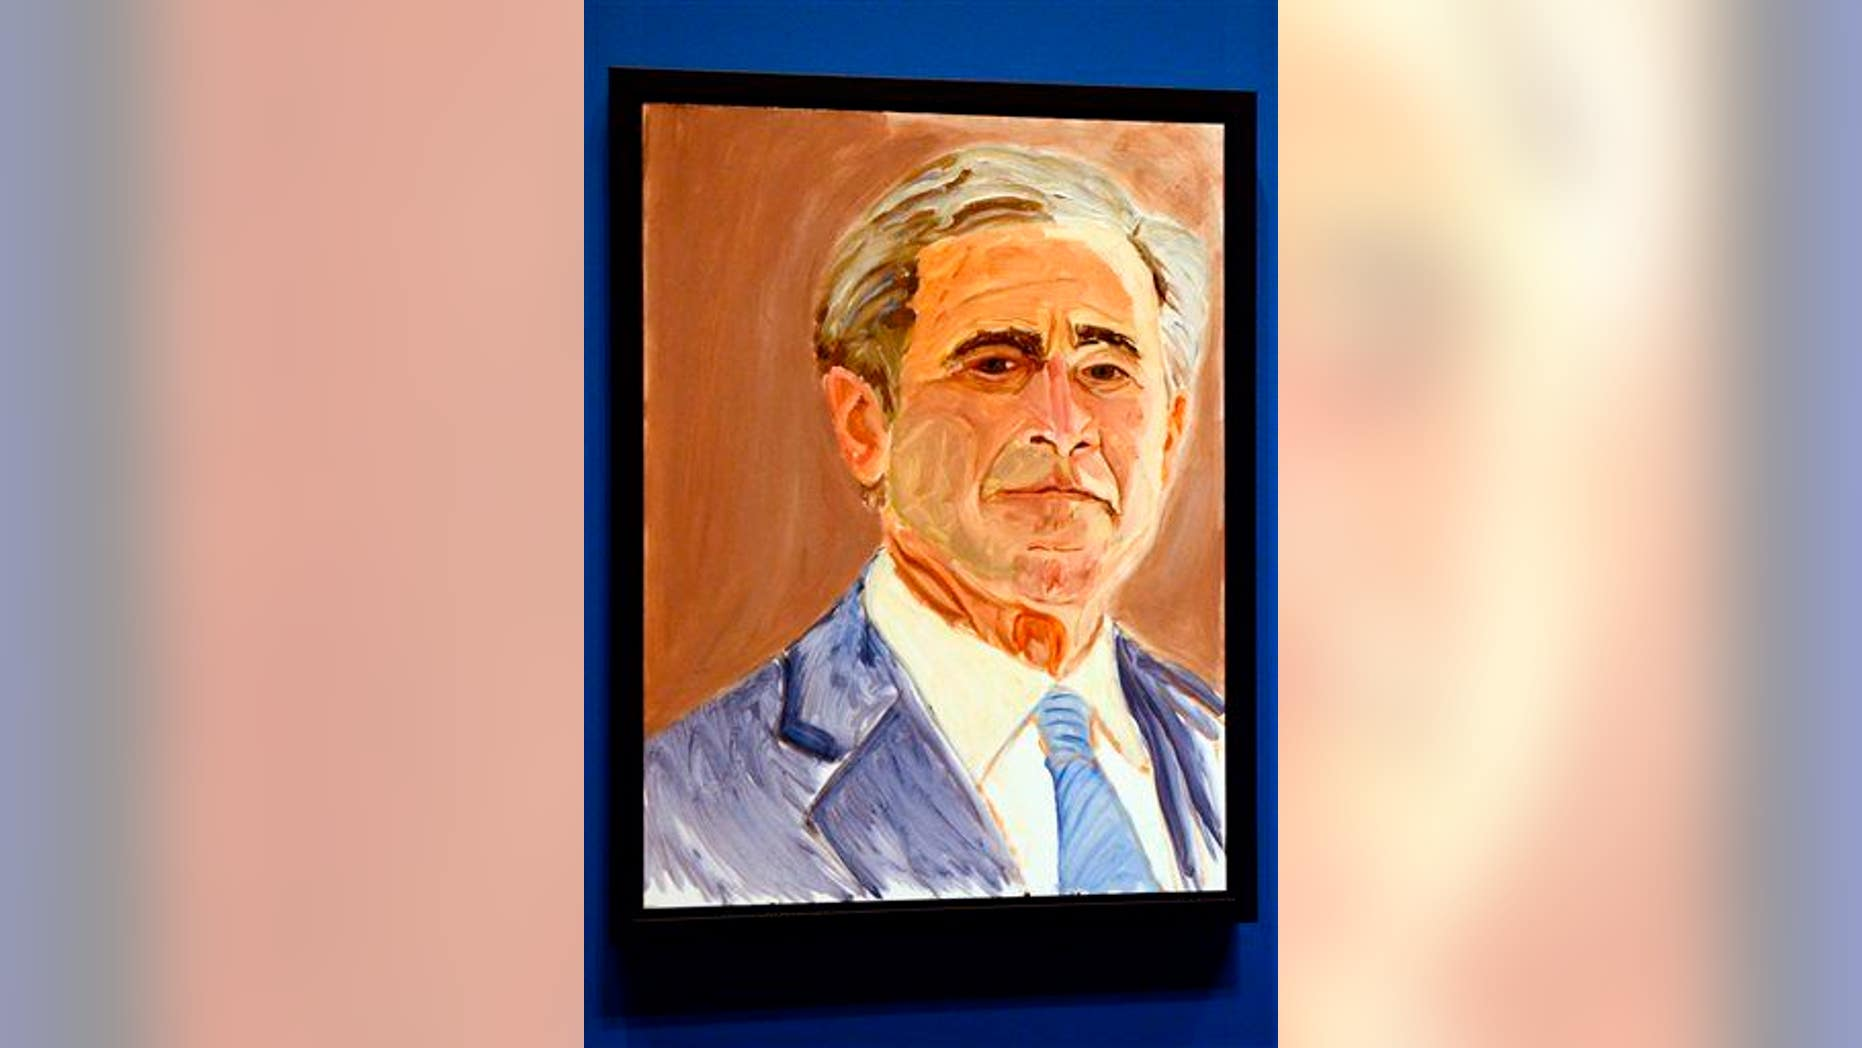 This self-portrait of George W. Bush is rather less revealing than the one Guccifer leaked.